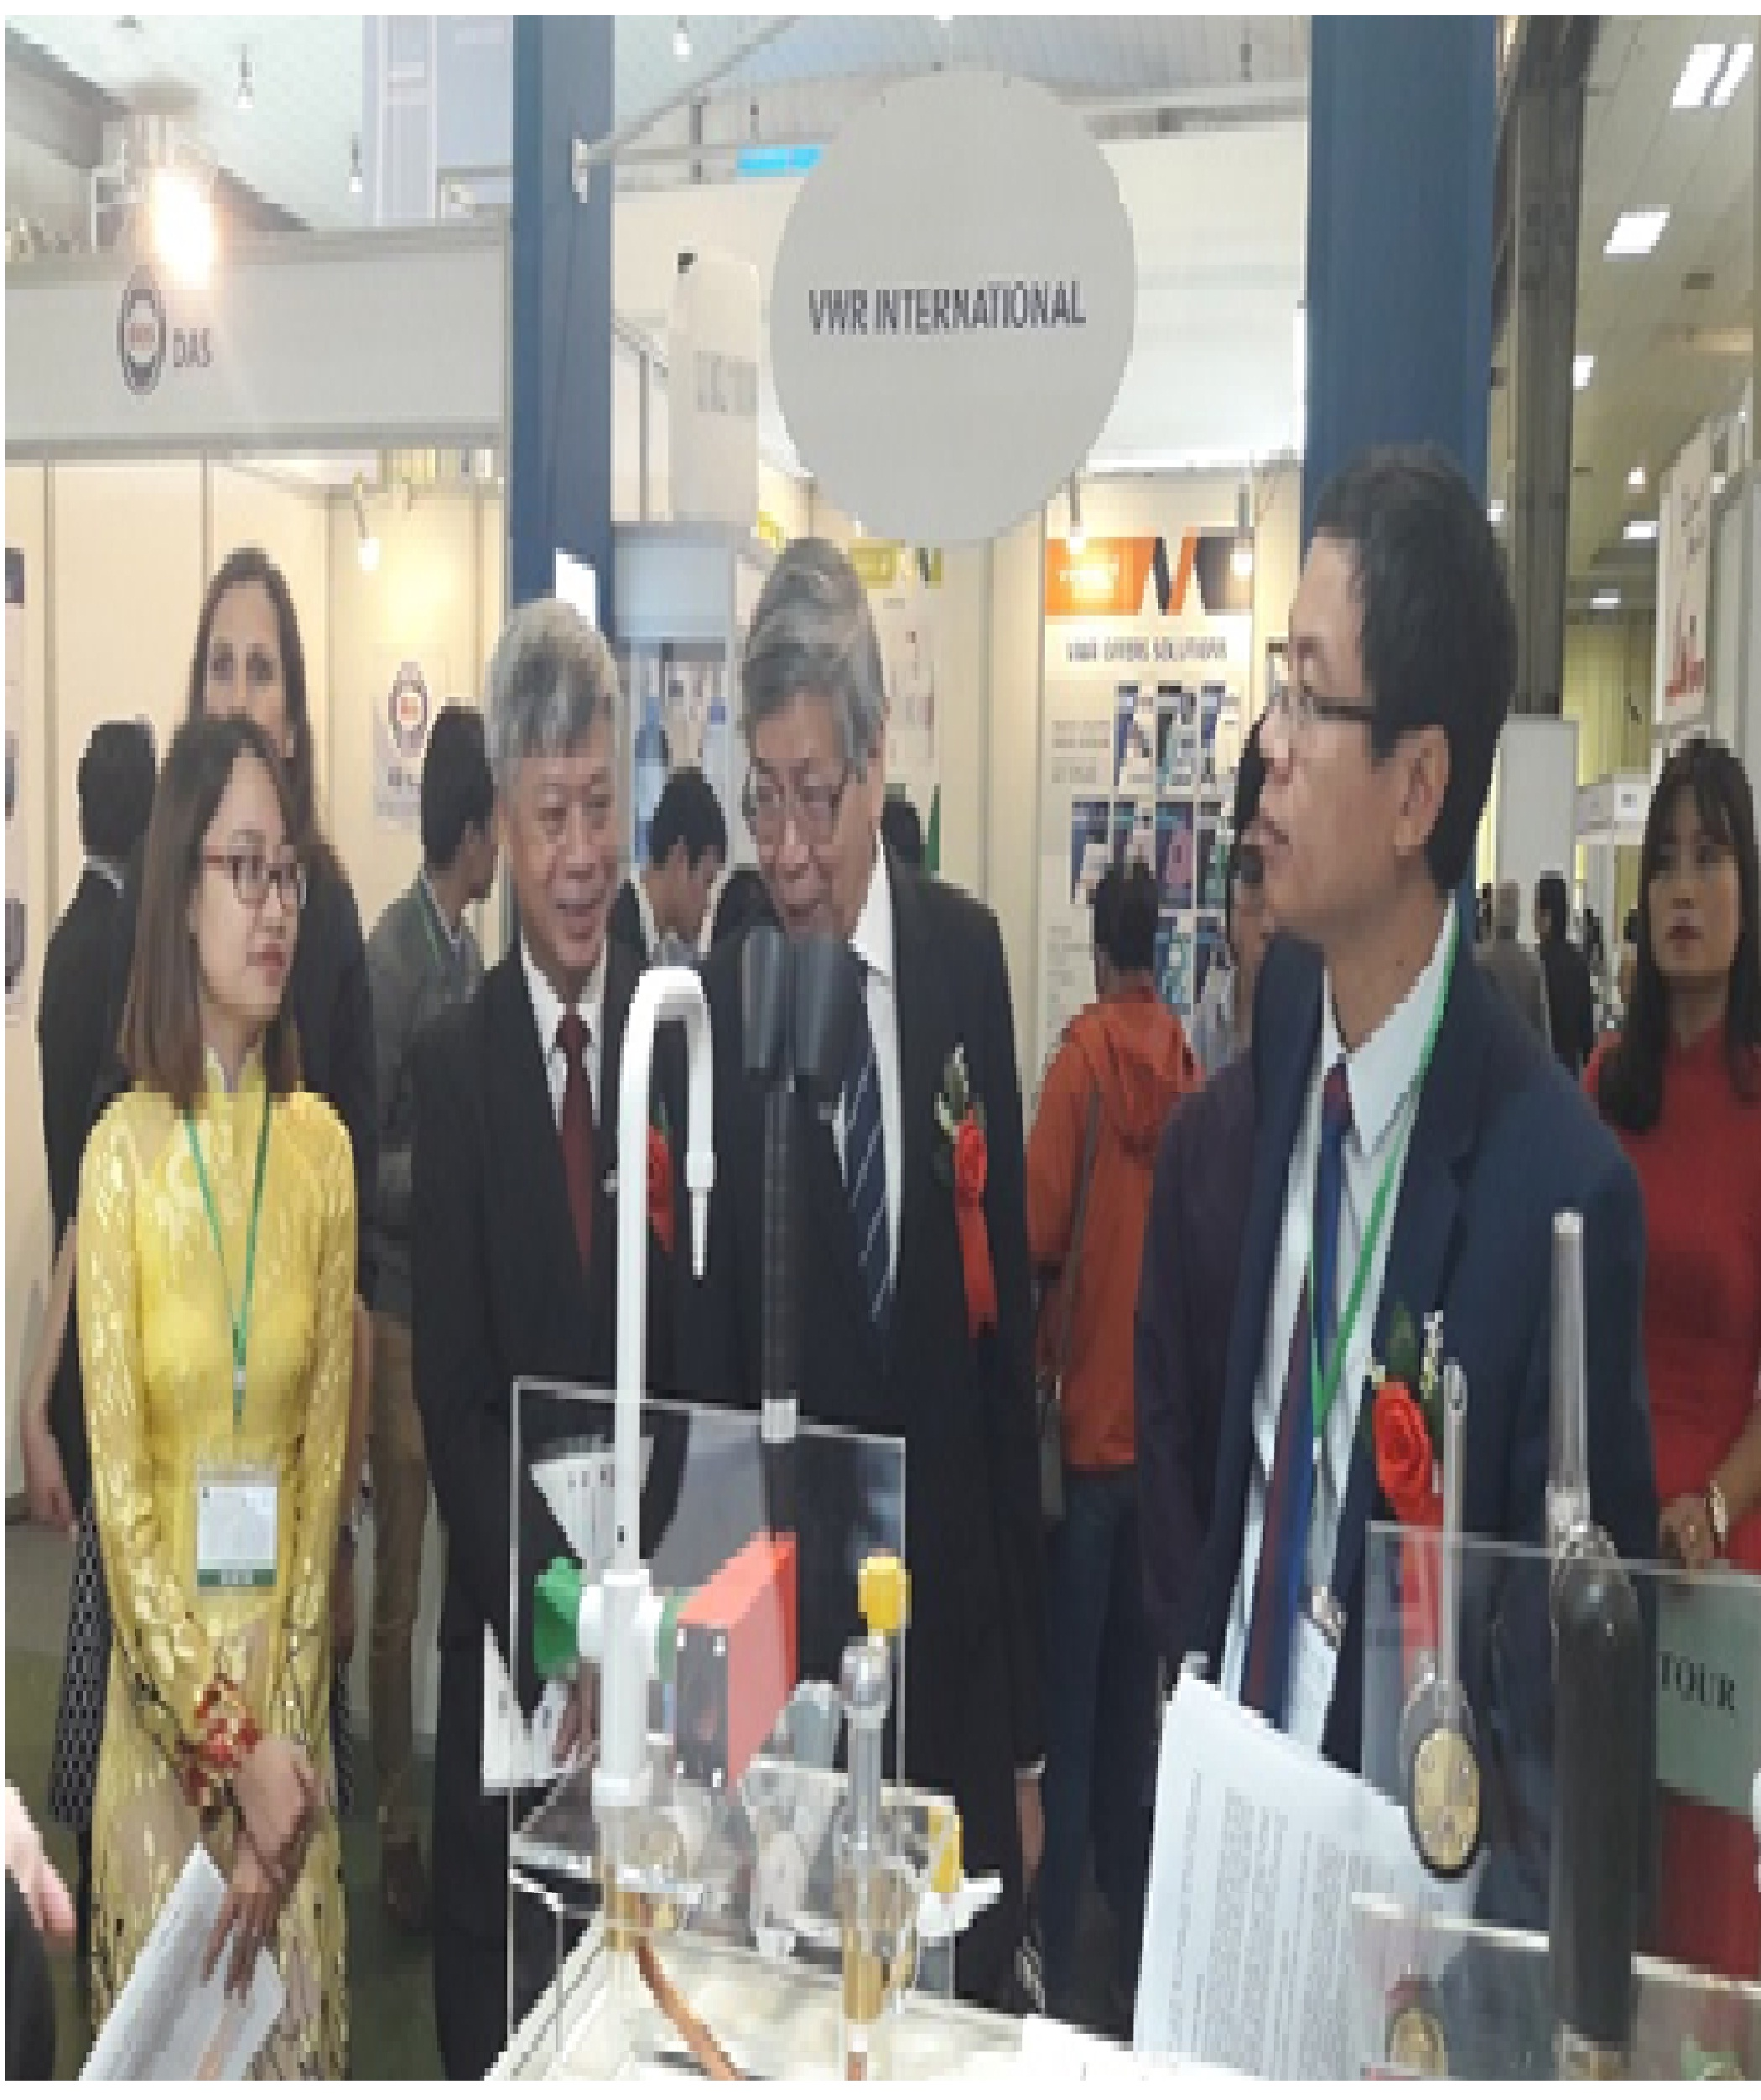 http://motthegioi.vn/media/thuanh/29_03_2017/tiep-can-nhung-cong-nghe-tien-tien-the-gioi-tai-analytica-vietnam-2017-anh-4.jpg